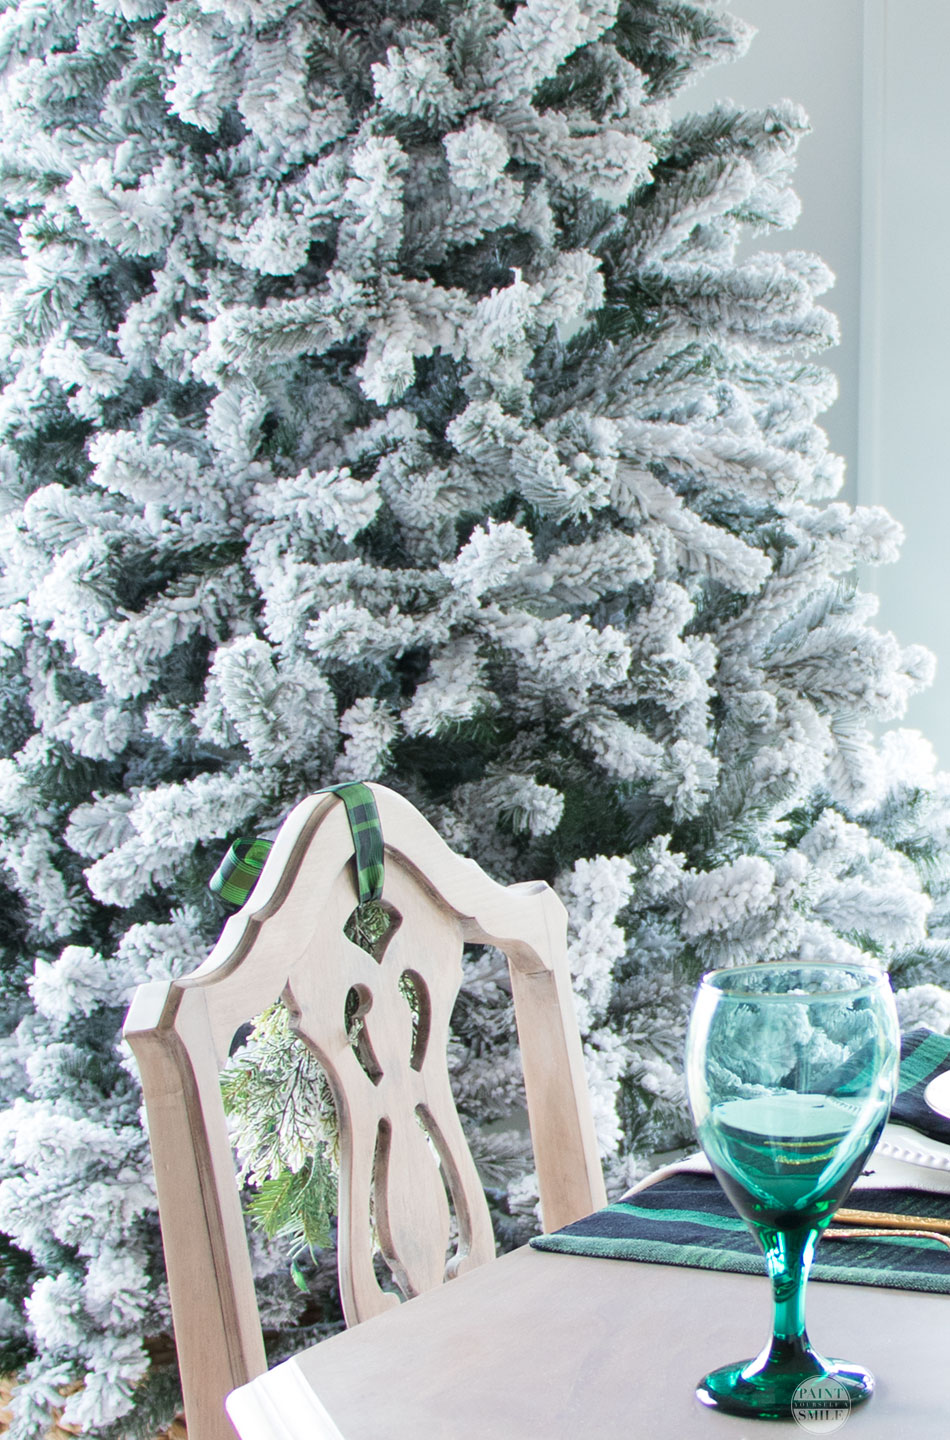 Stunning winter wonderland dining room with DIY flocked window wreaths, DIY flocked mini trees, and gorgeous table scape. Snowy neutral winter décor ideas